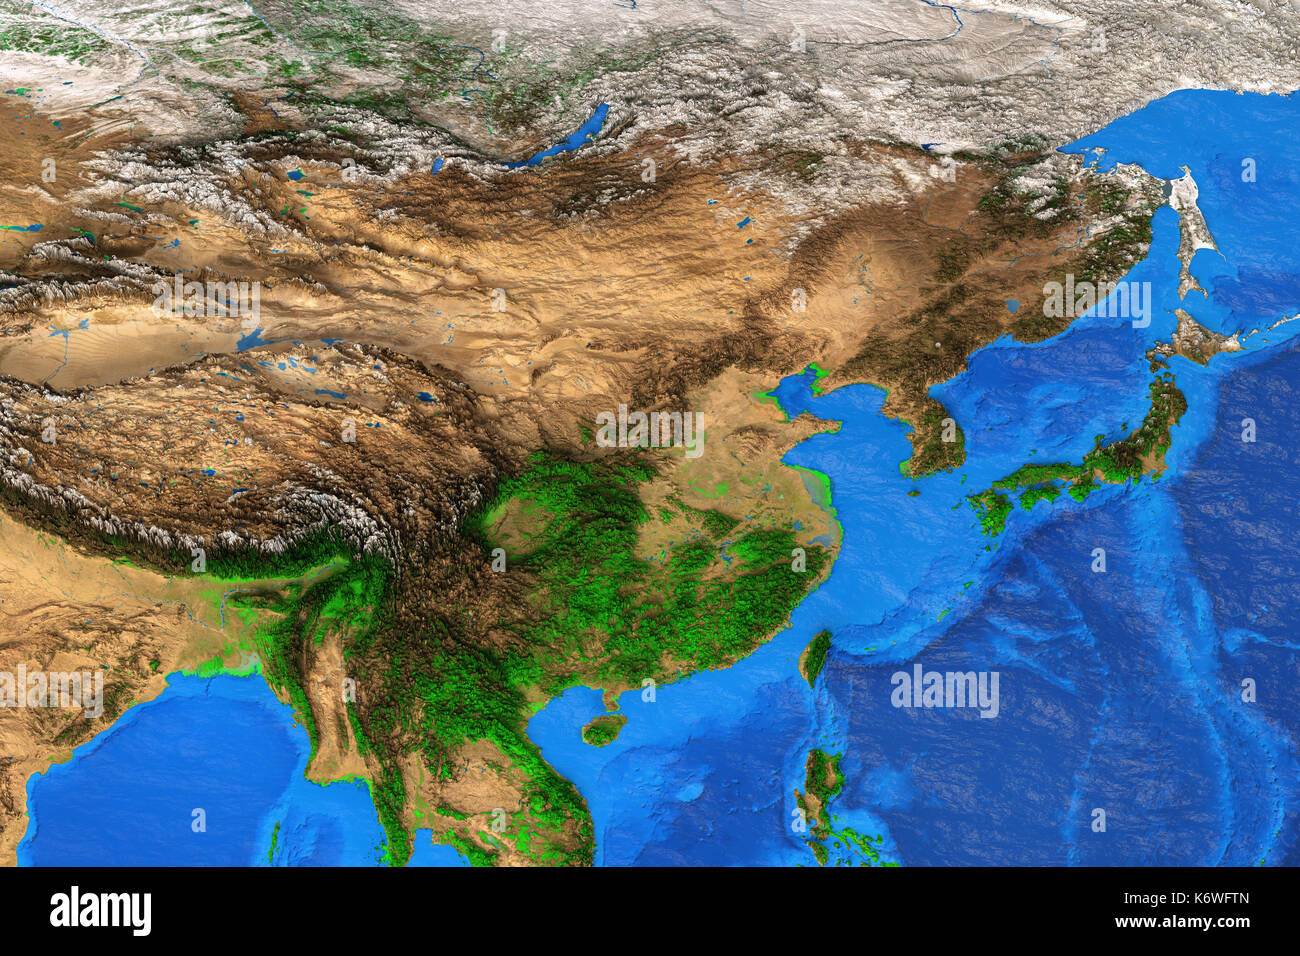 Physical Map Of East Asia Detailed Satellite View Of The Earth - Map of east asia